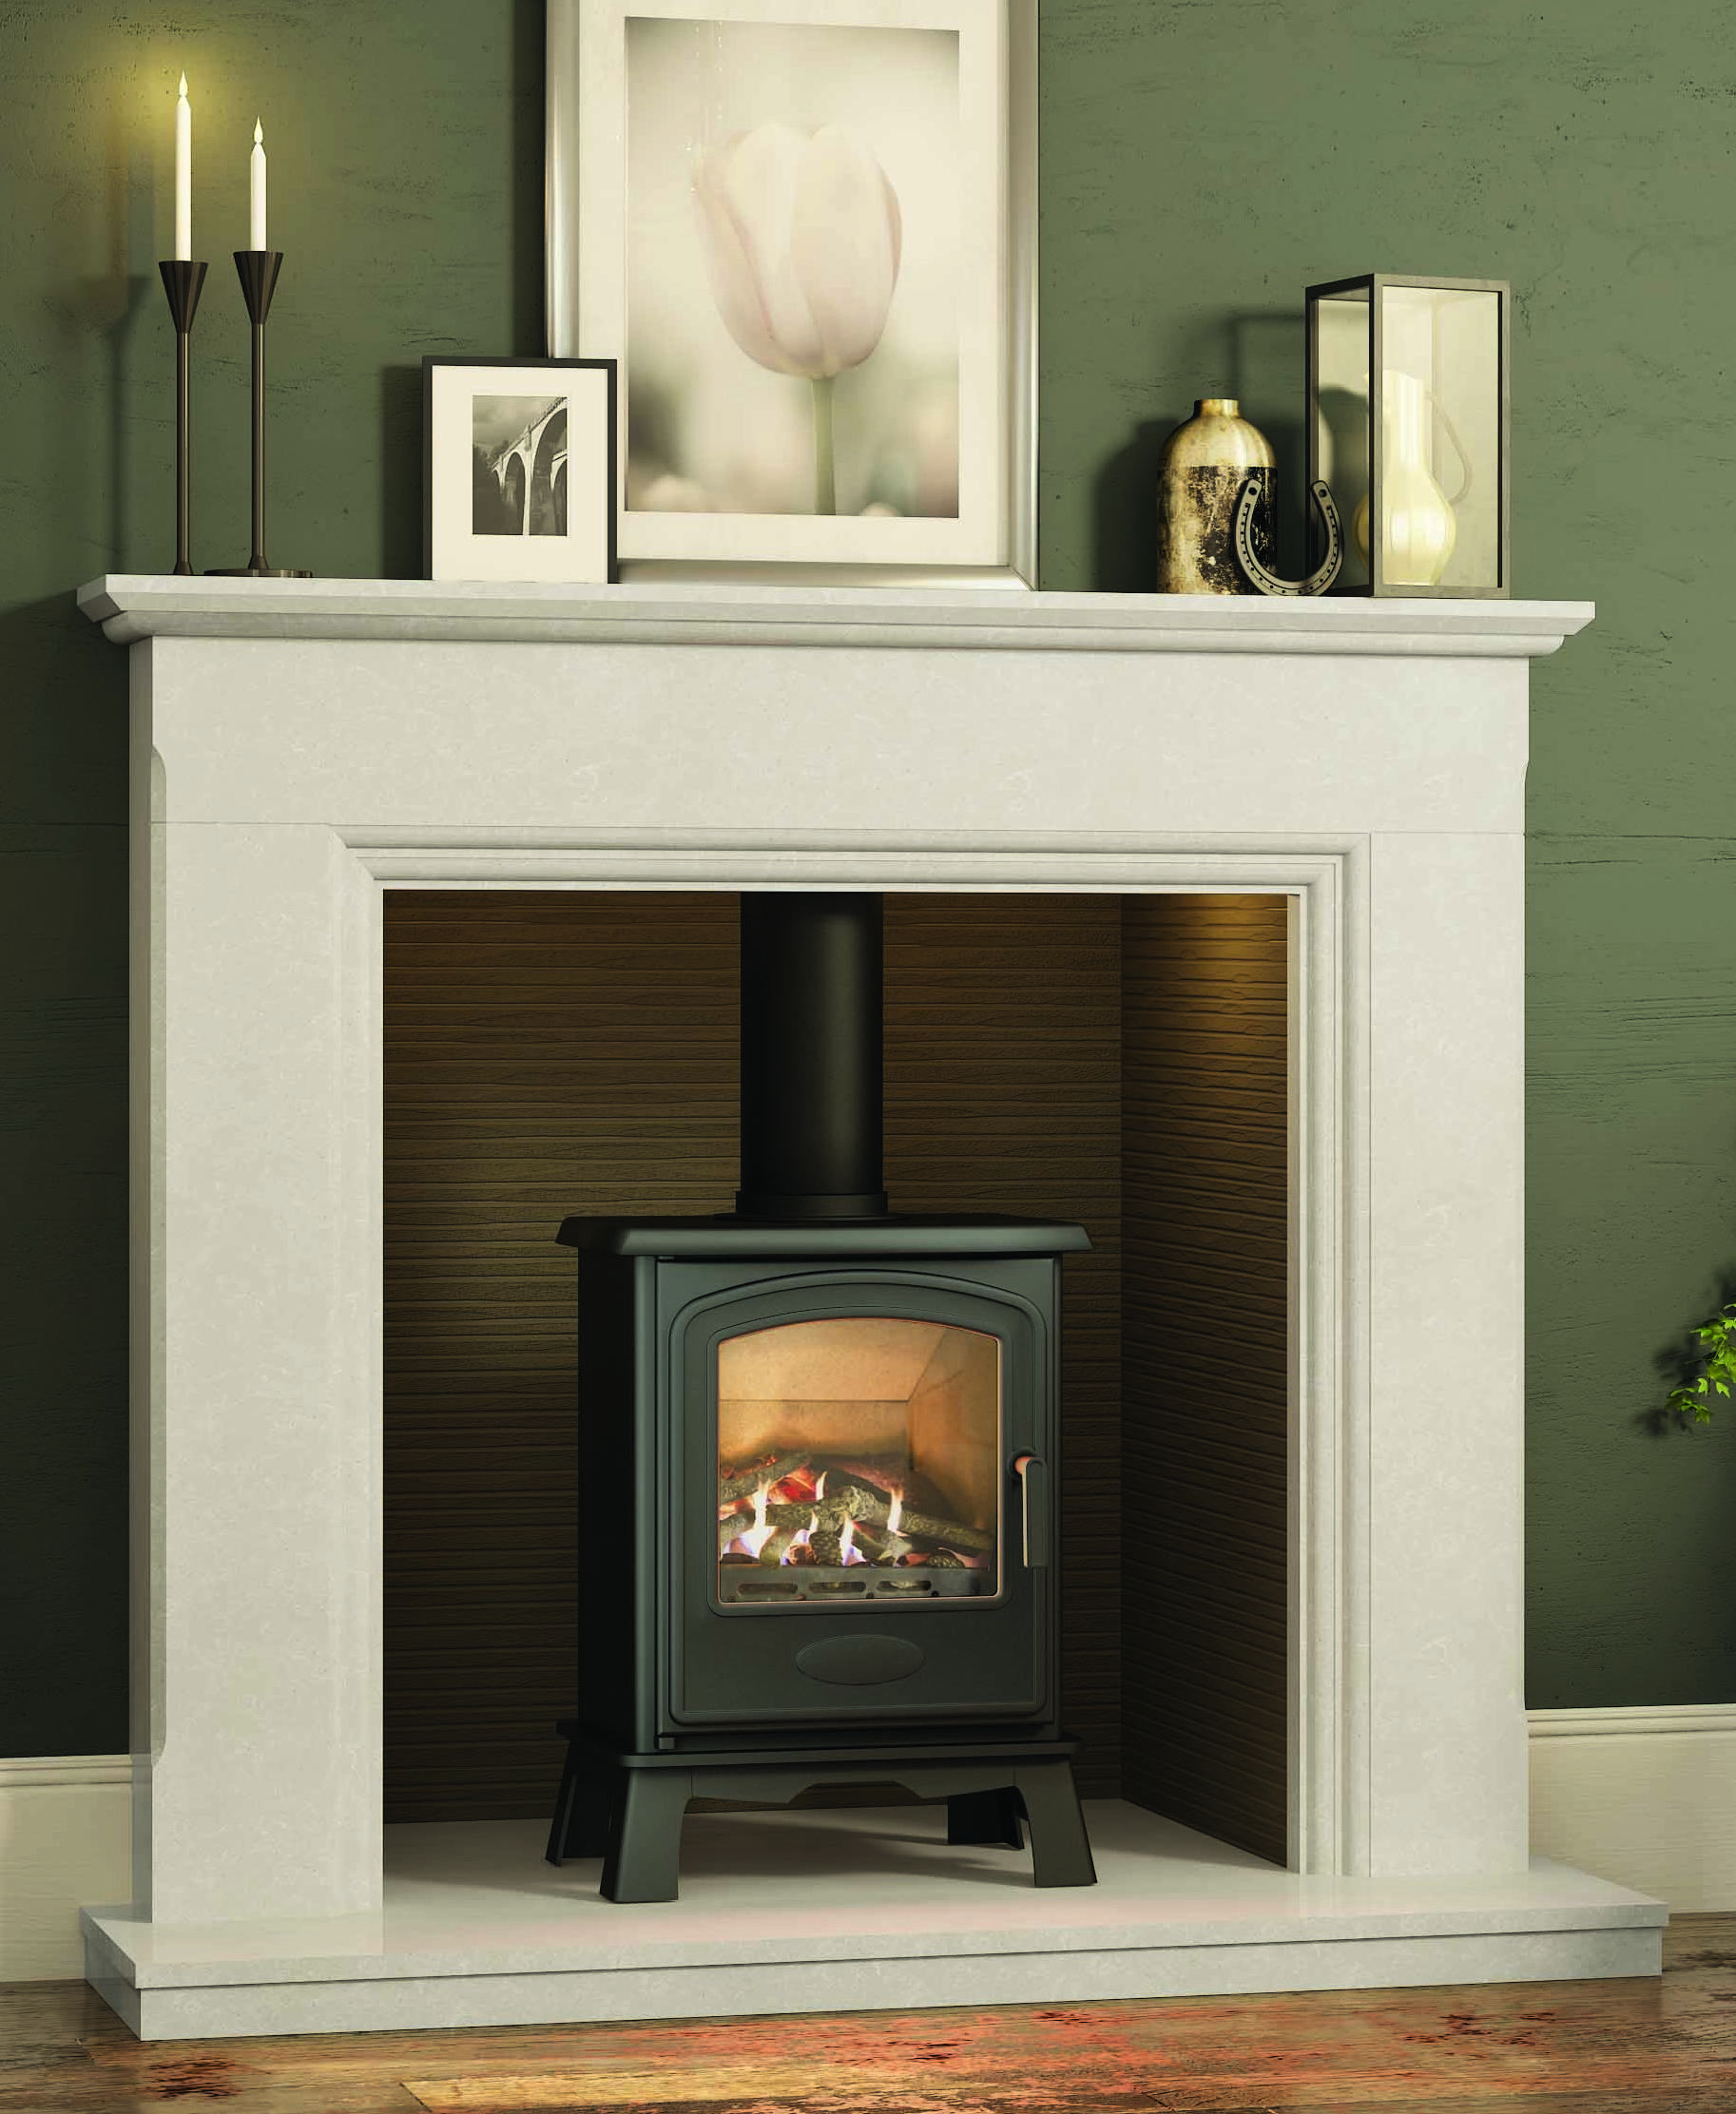 gas stoves excellent value gas stoves to buy online from uk stoves